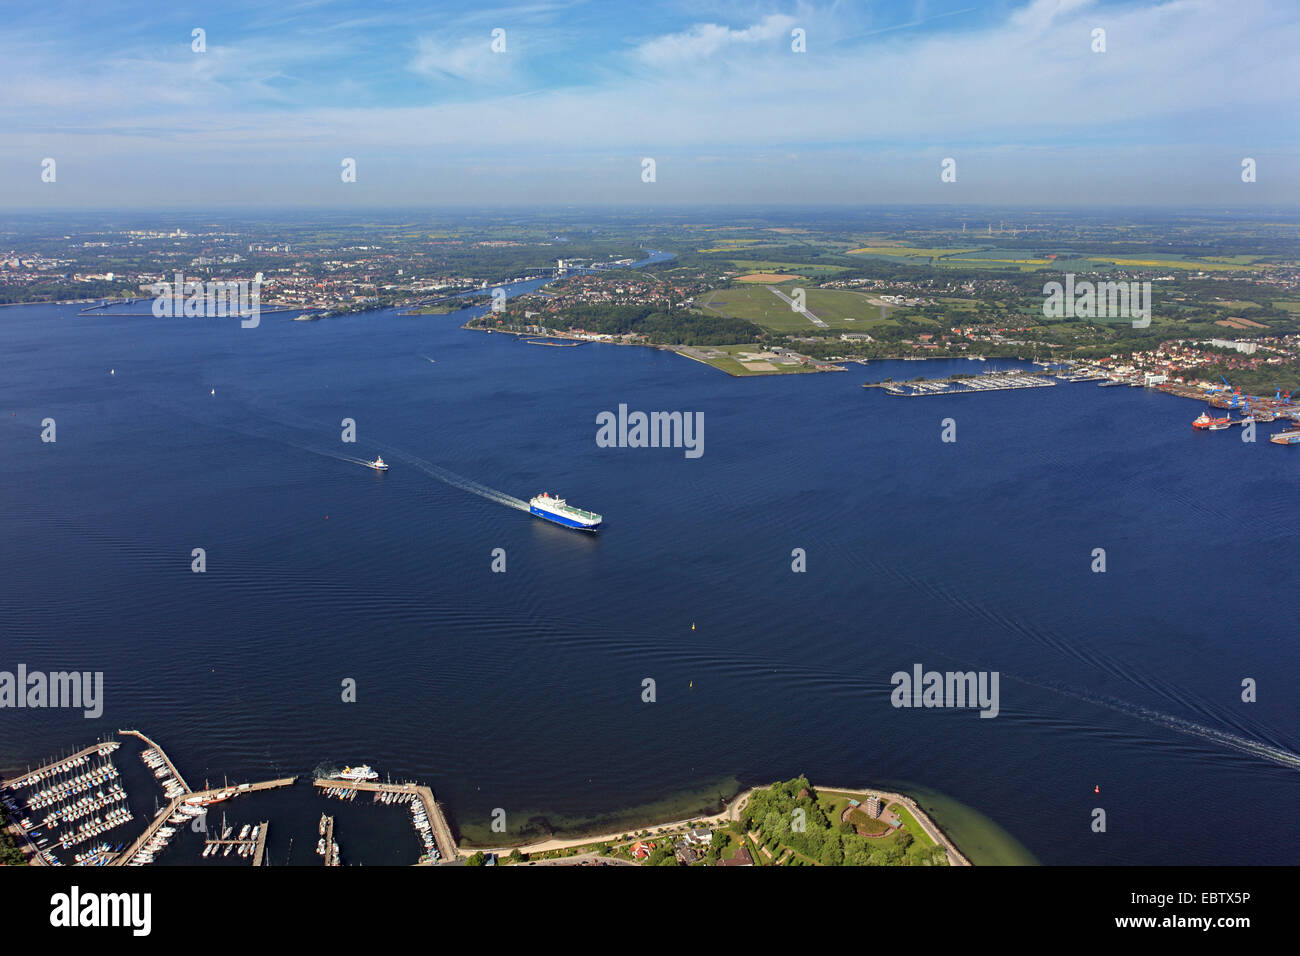 Bay of Kiel, view to Holtenau watergate, Germany - Stock Image